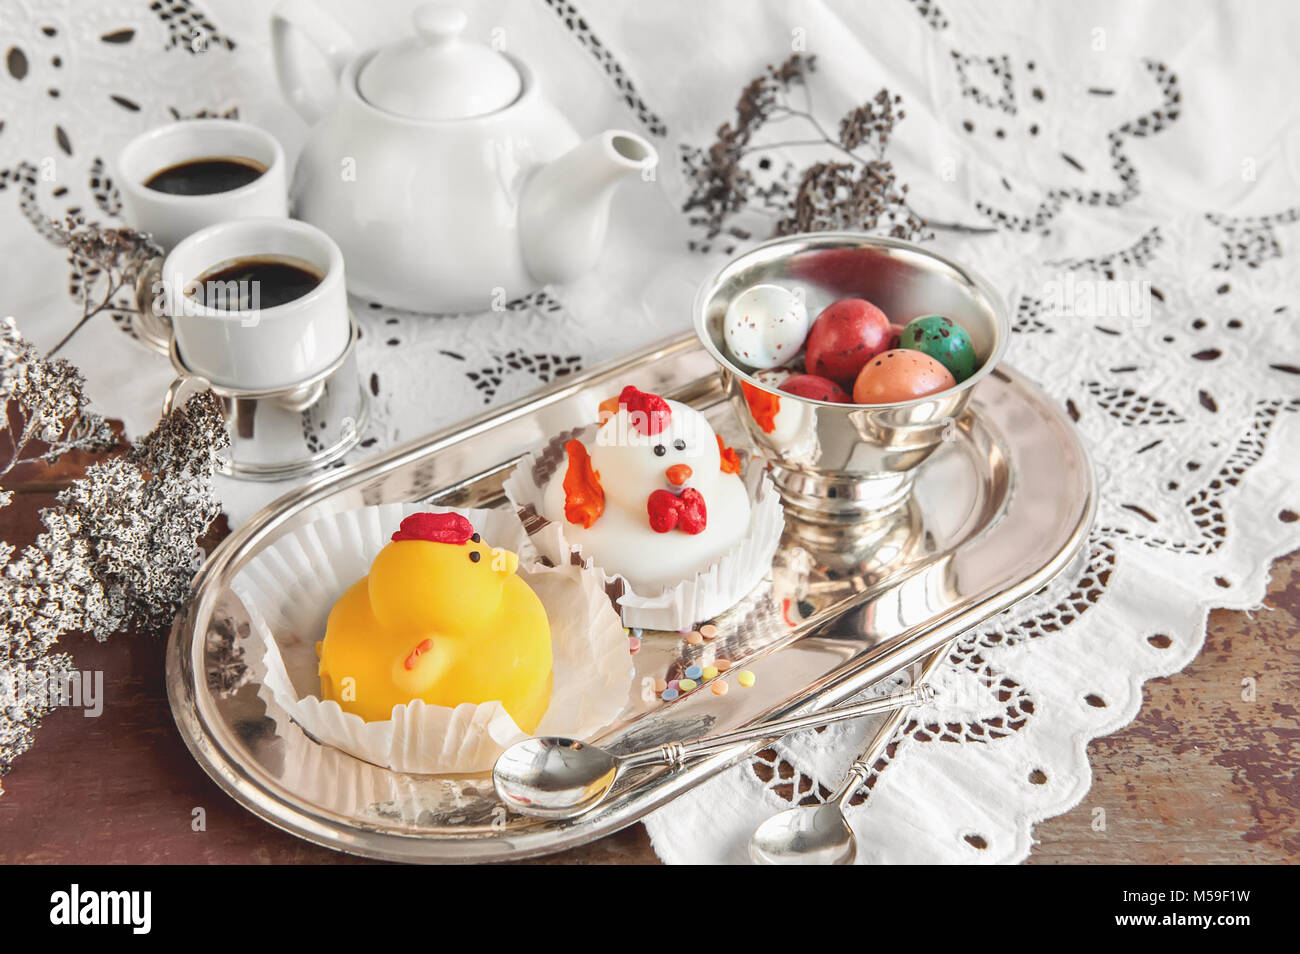 marzipan figures stockfotos marzipan figures bilder alamy. Black Bedroom Furniture Sets. Home Design Ideas